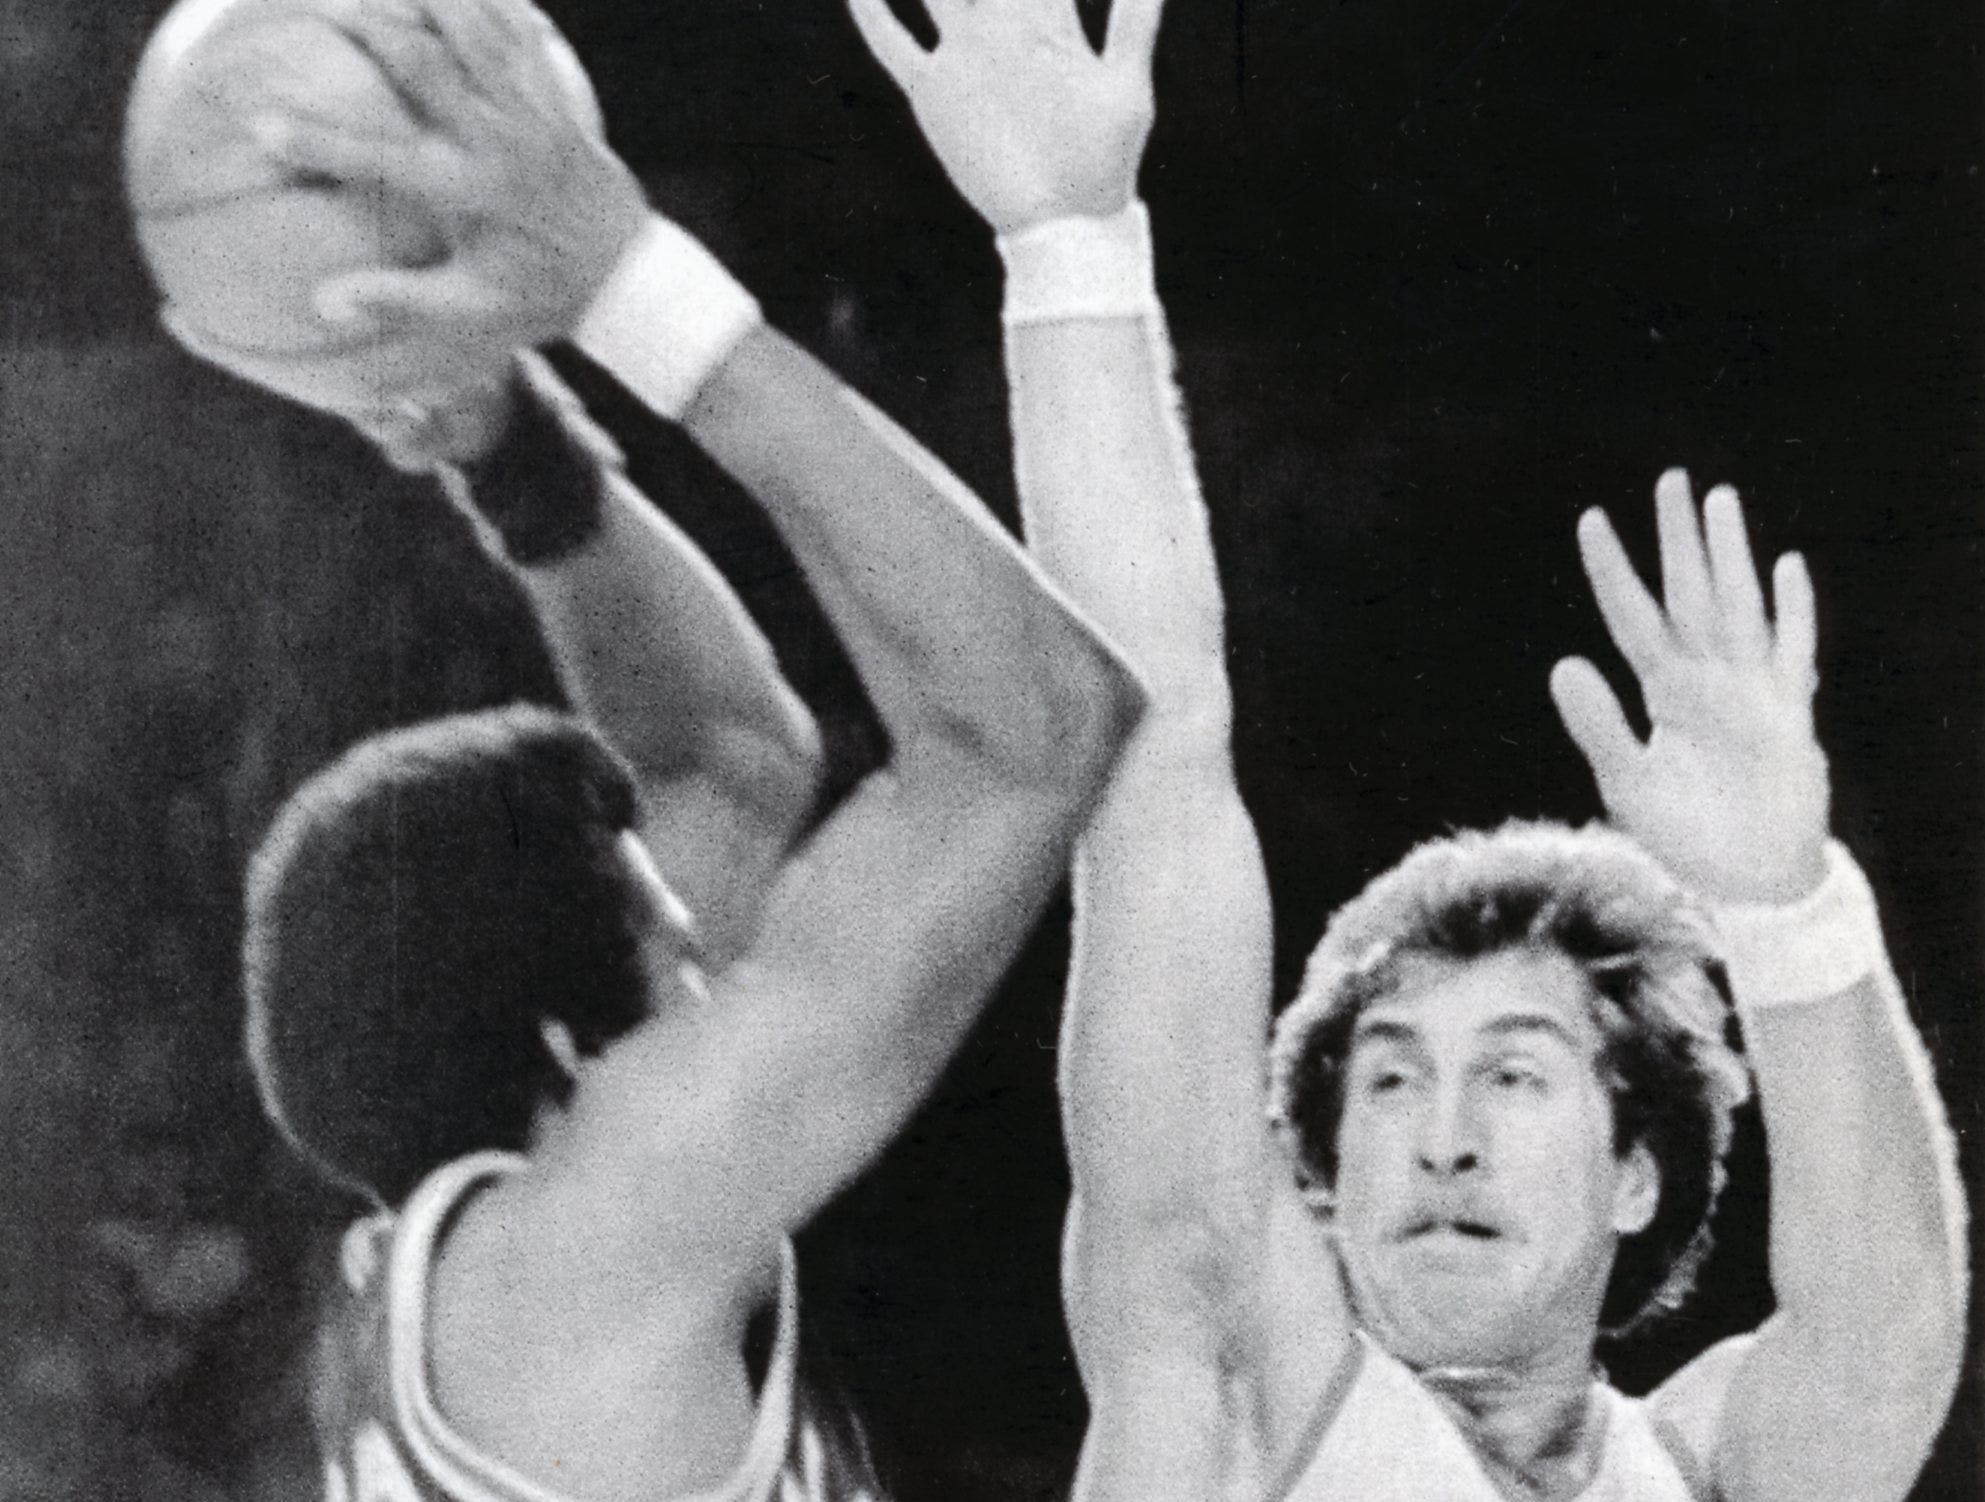 Milwaukee Bucks' Ernie Grunfeld attempts to block a shot during a game against Kansas City Kings, November, 1977.